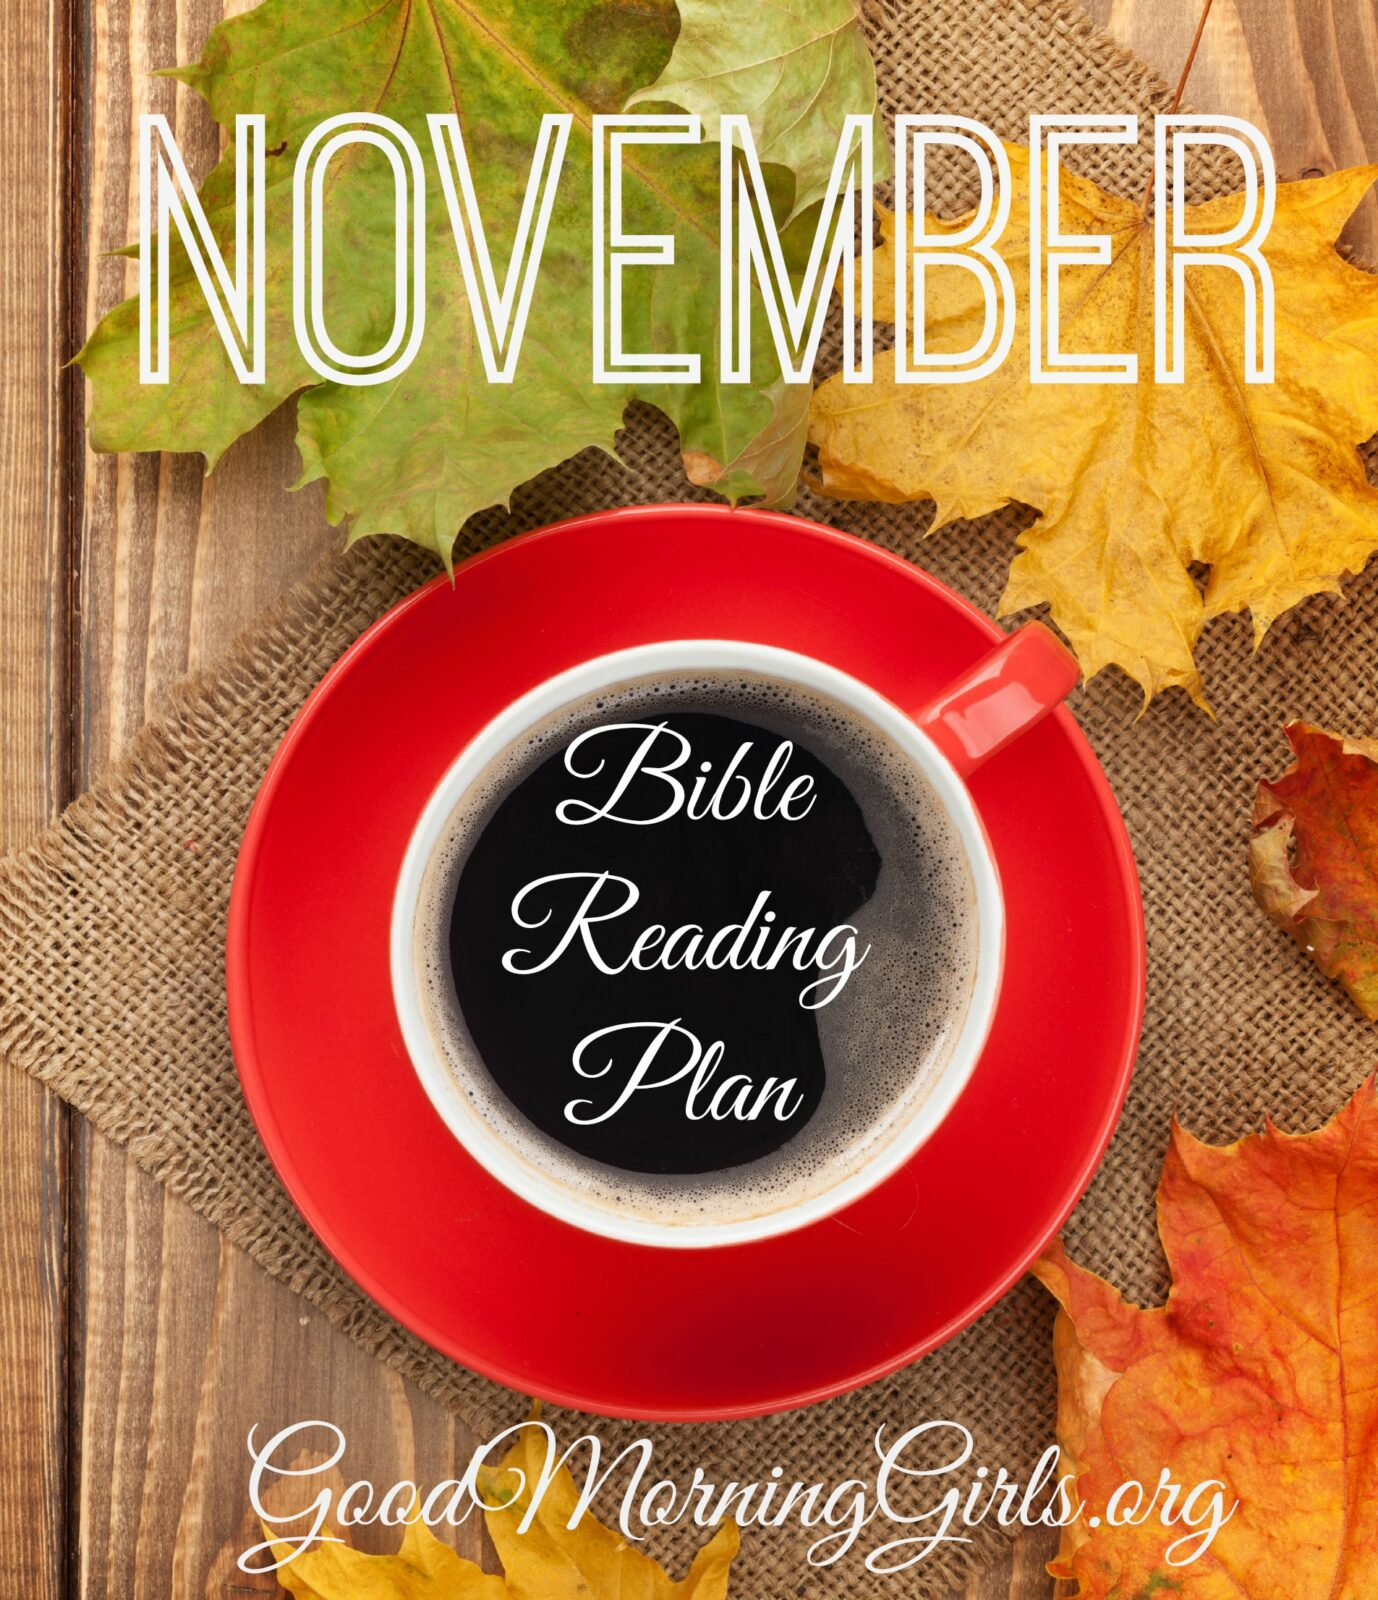 November Bible Reading Plan {11.2.14}